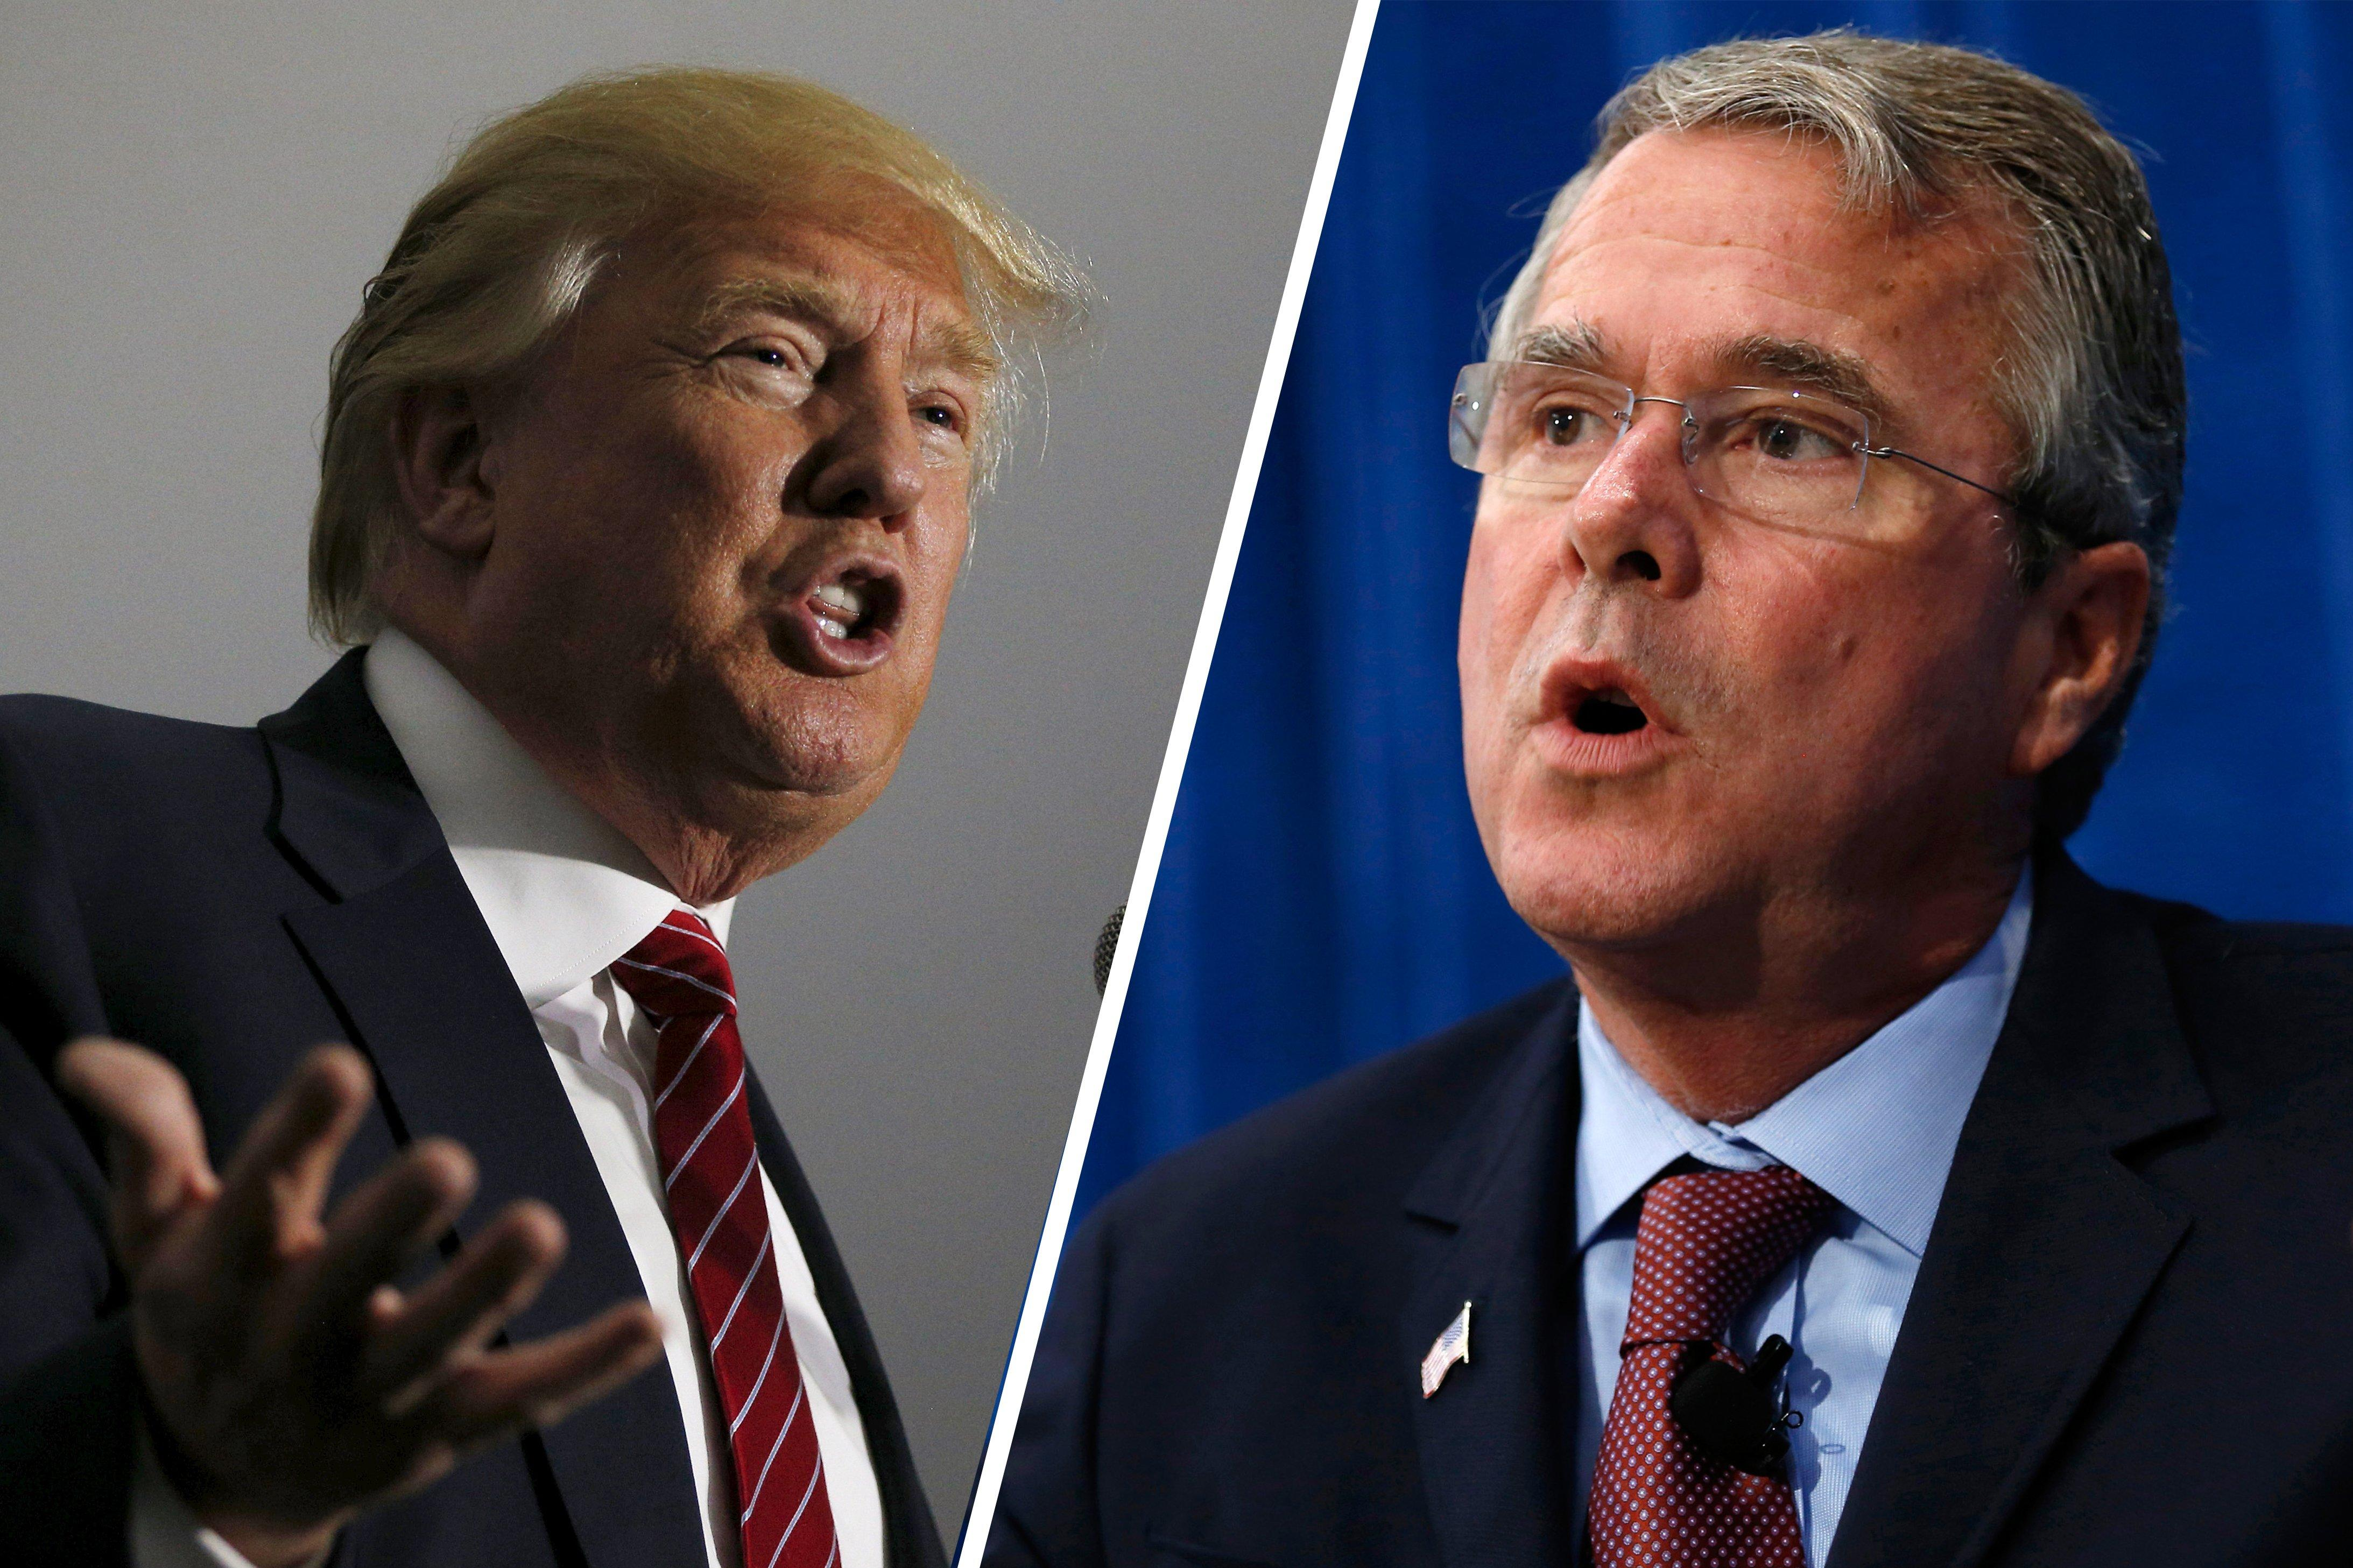 Bush: Trump Is Wrong and Scary, but Still Better than Clinton